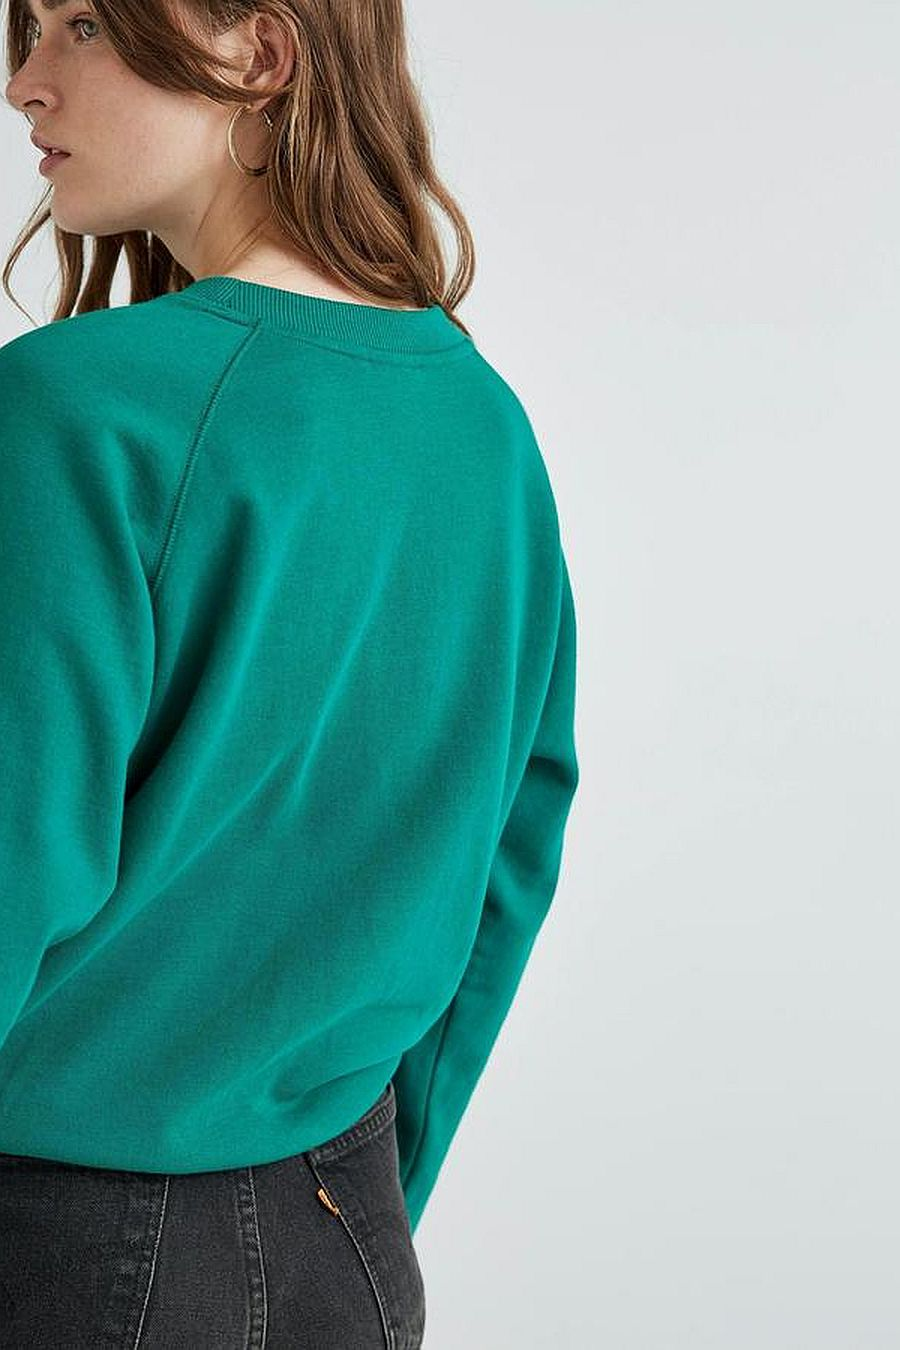 Richer Poorer Fleece Sweatshirt - Evergreen